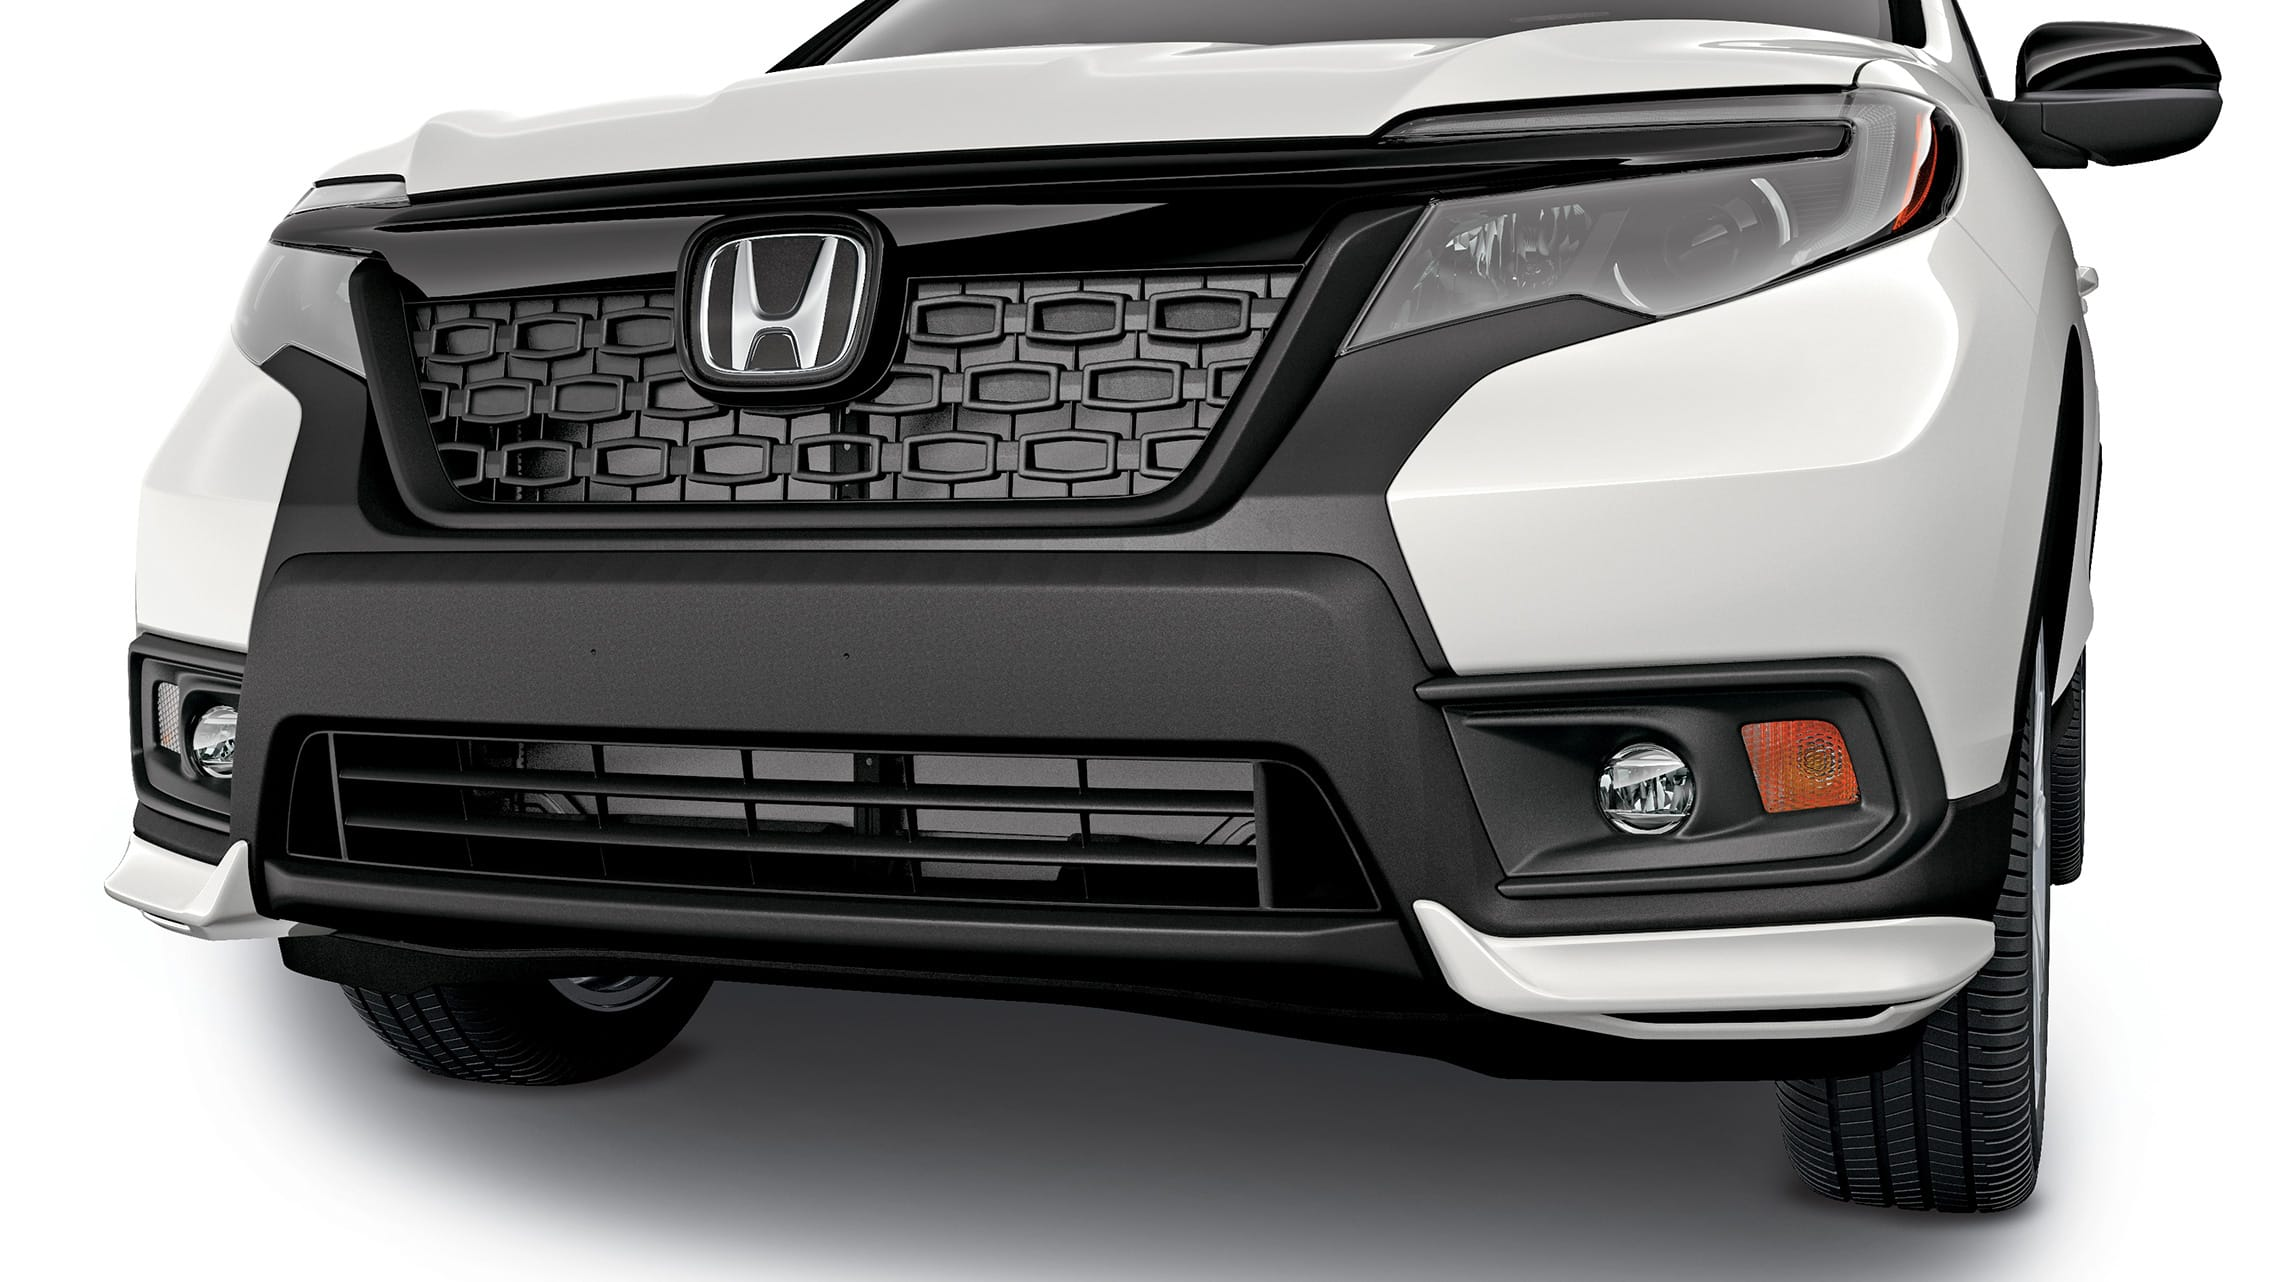 Detail of accessory front underbody spoiler on the 2021 Honda Passport.